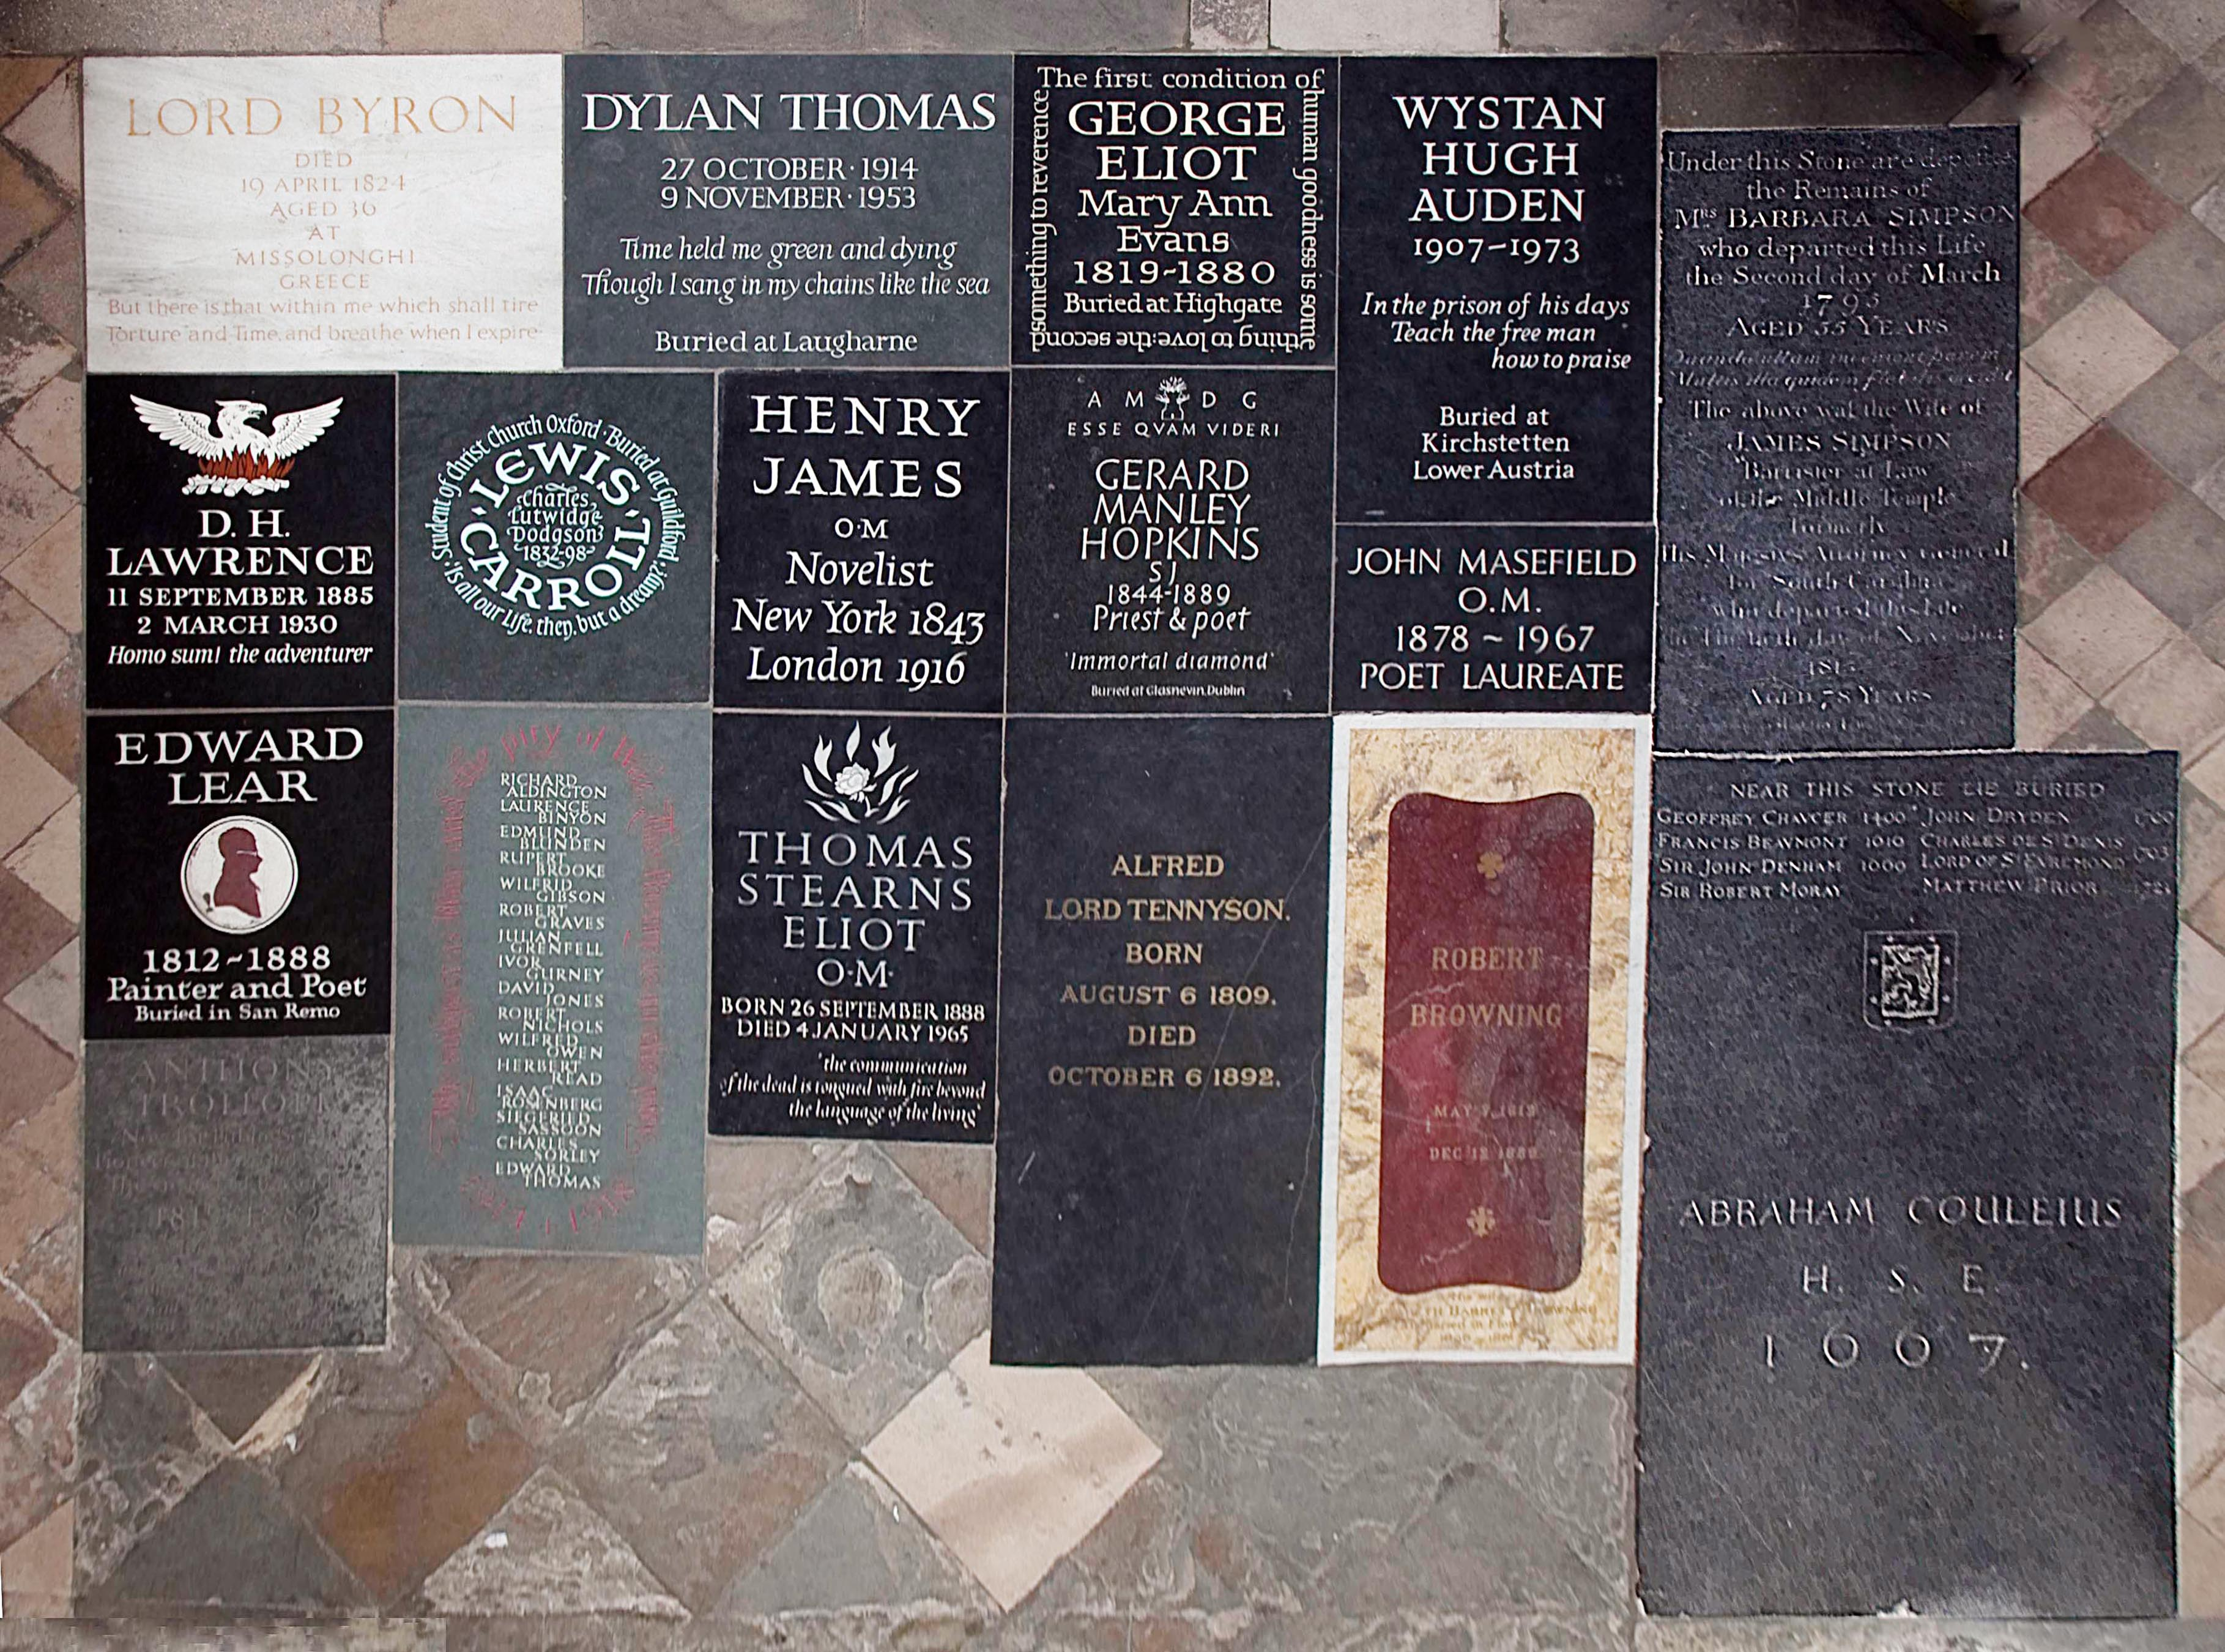 Memorial stones in Poets' Corner from above